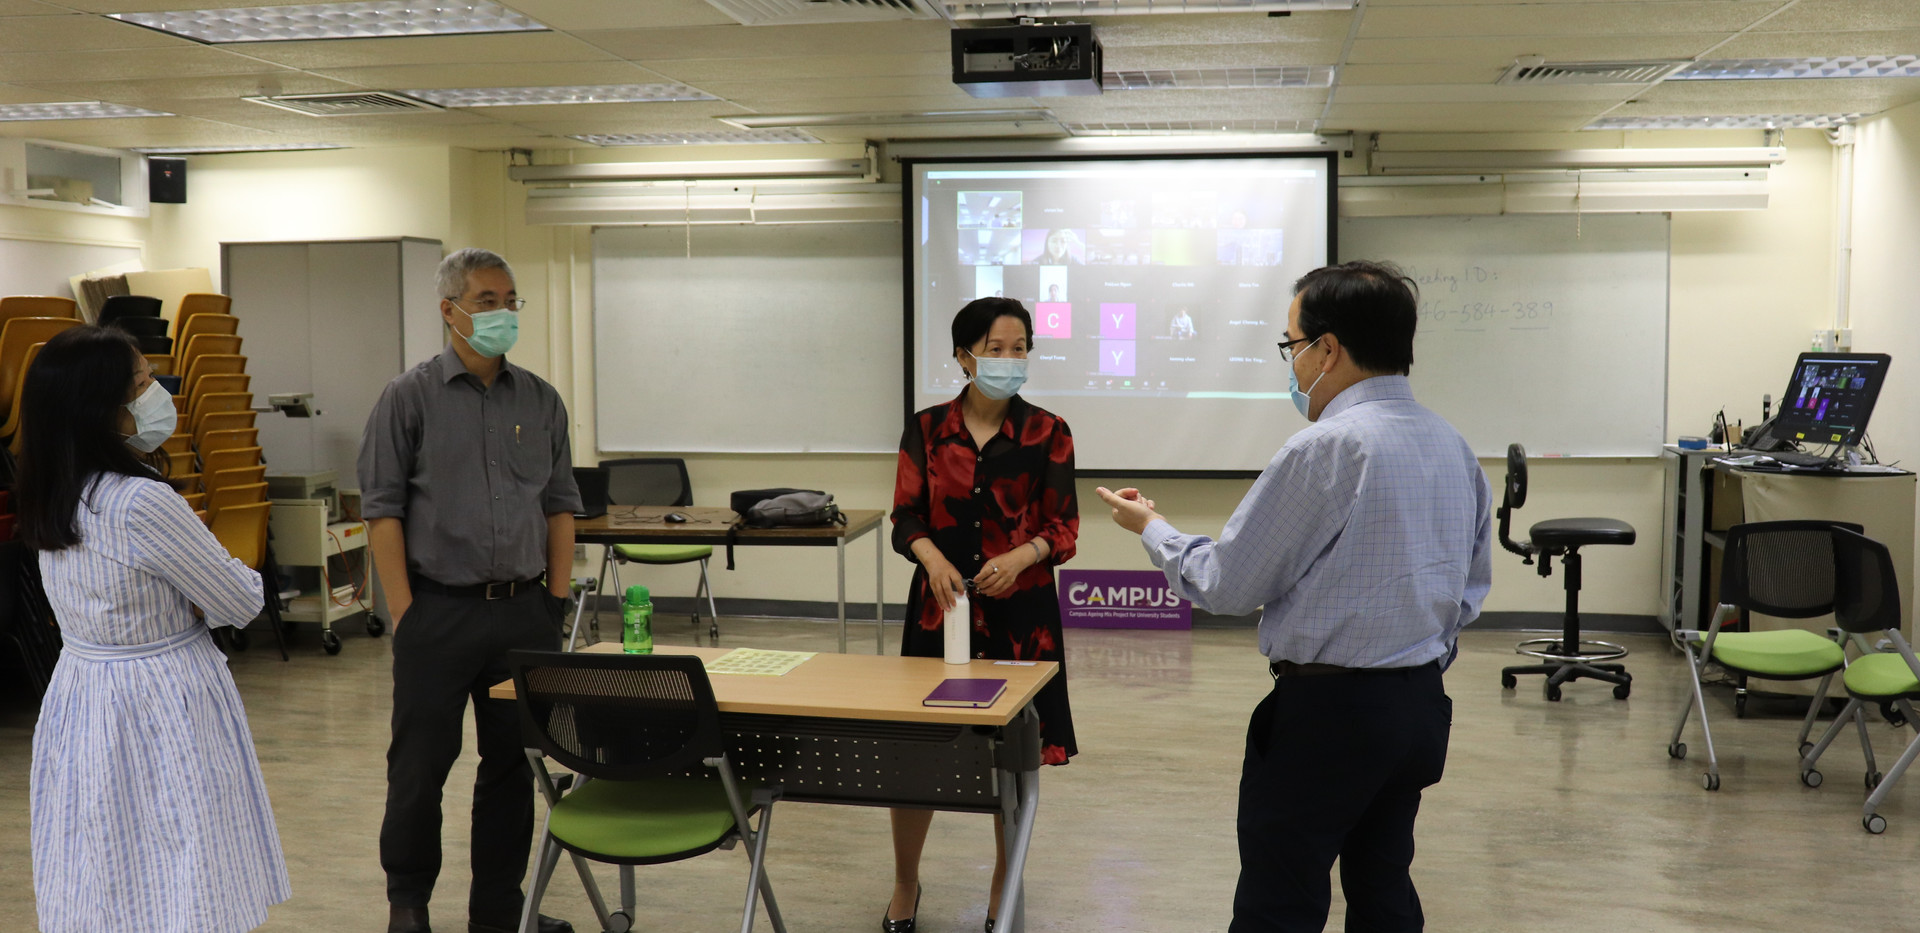 """[Virtual lecture] HKU MSc Urban Planning students learning ageing and discussing age-friendlinesswith """"Senior Champions"""" (September21, 2020)"""